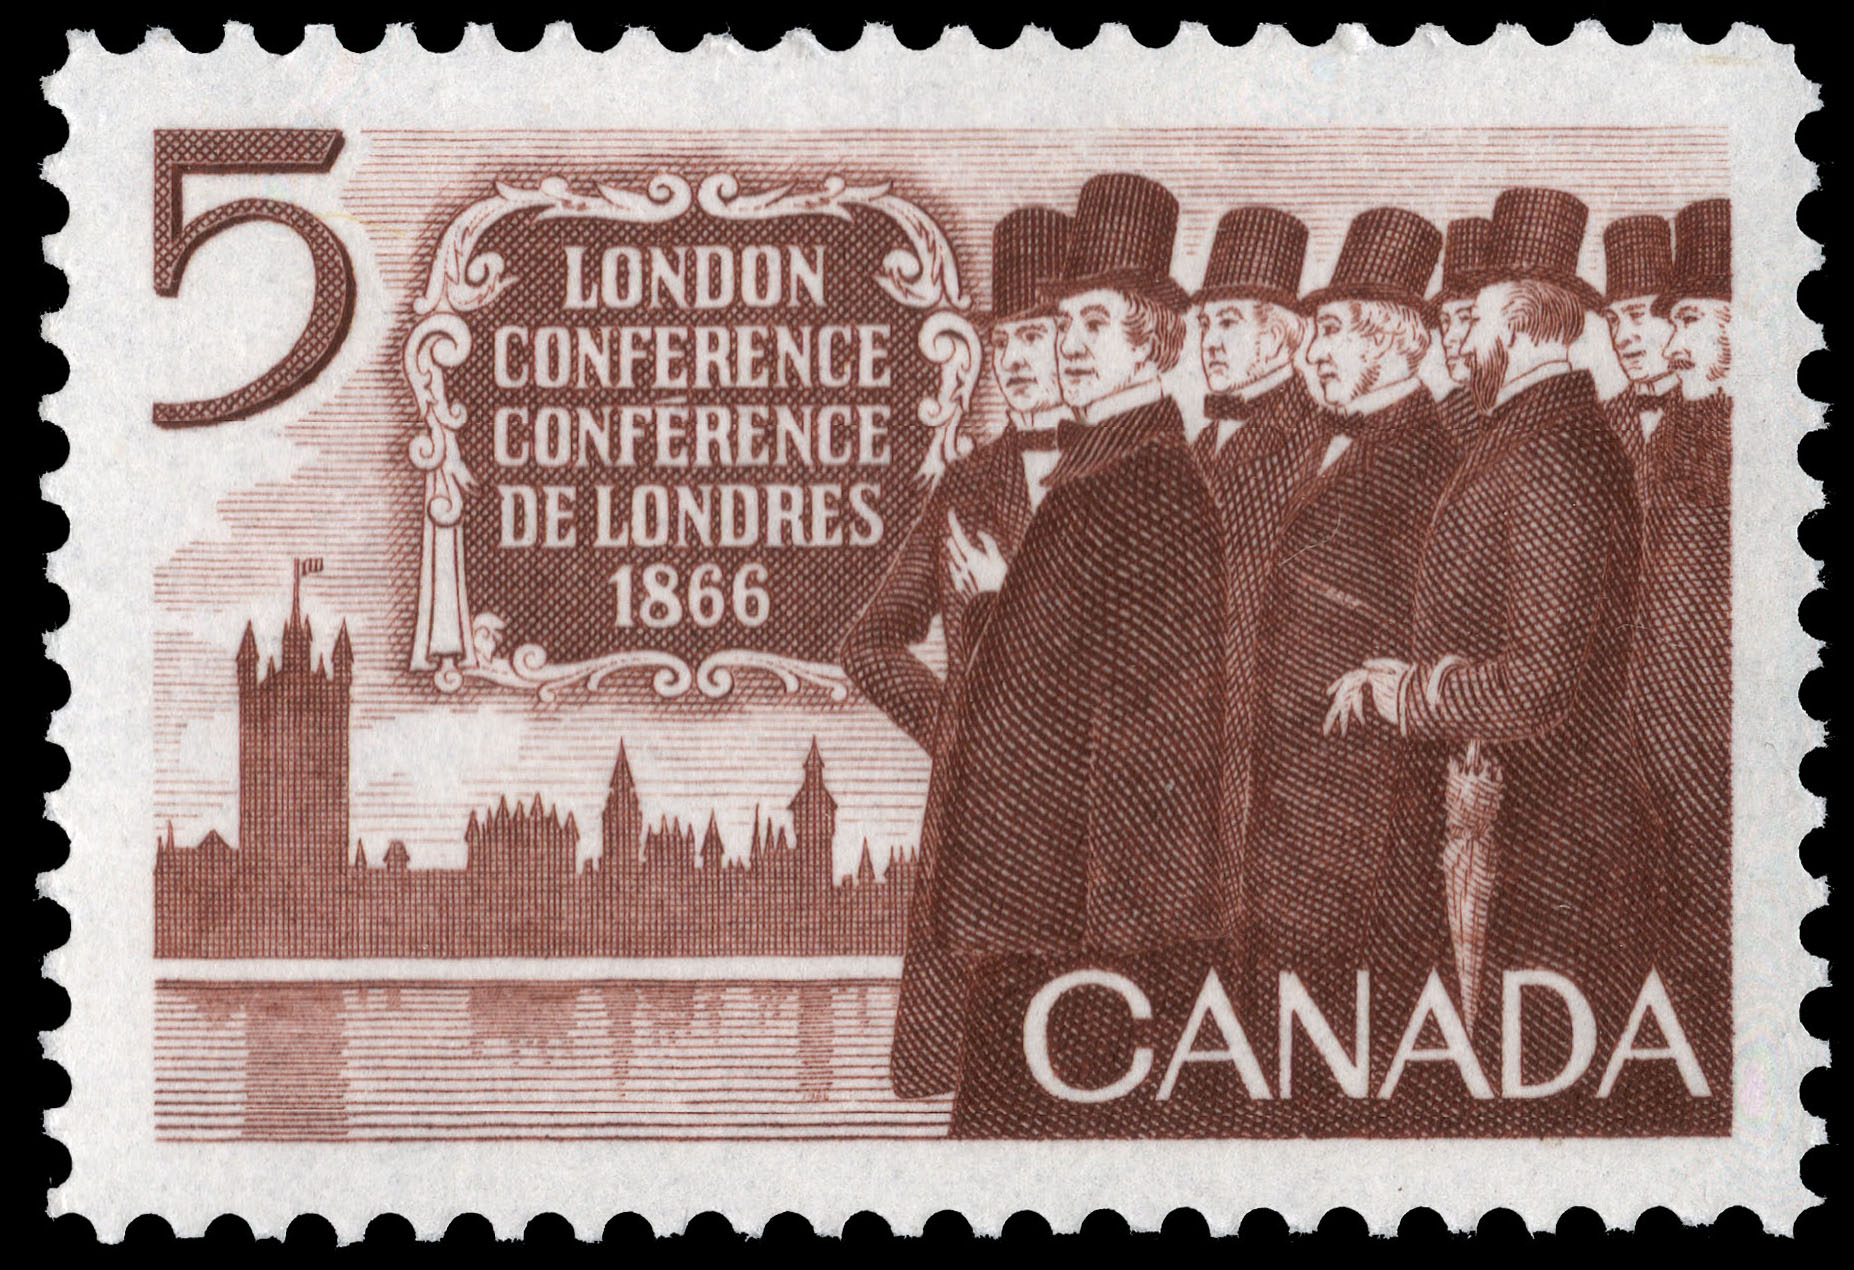 London Conference, 1866 Canada Postage Stamp